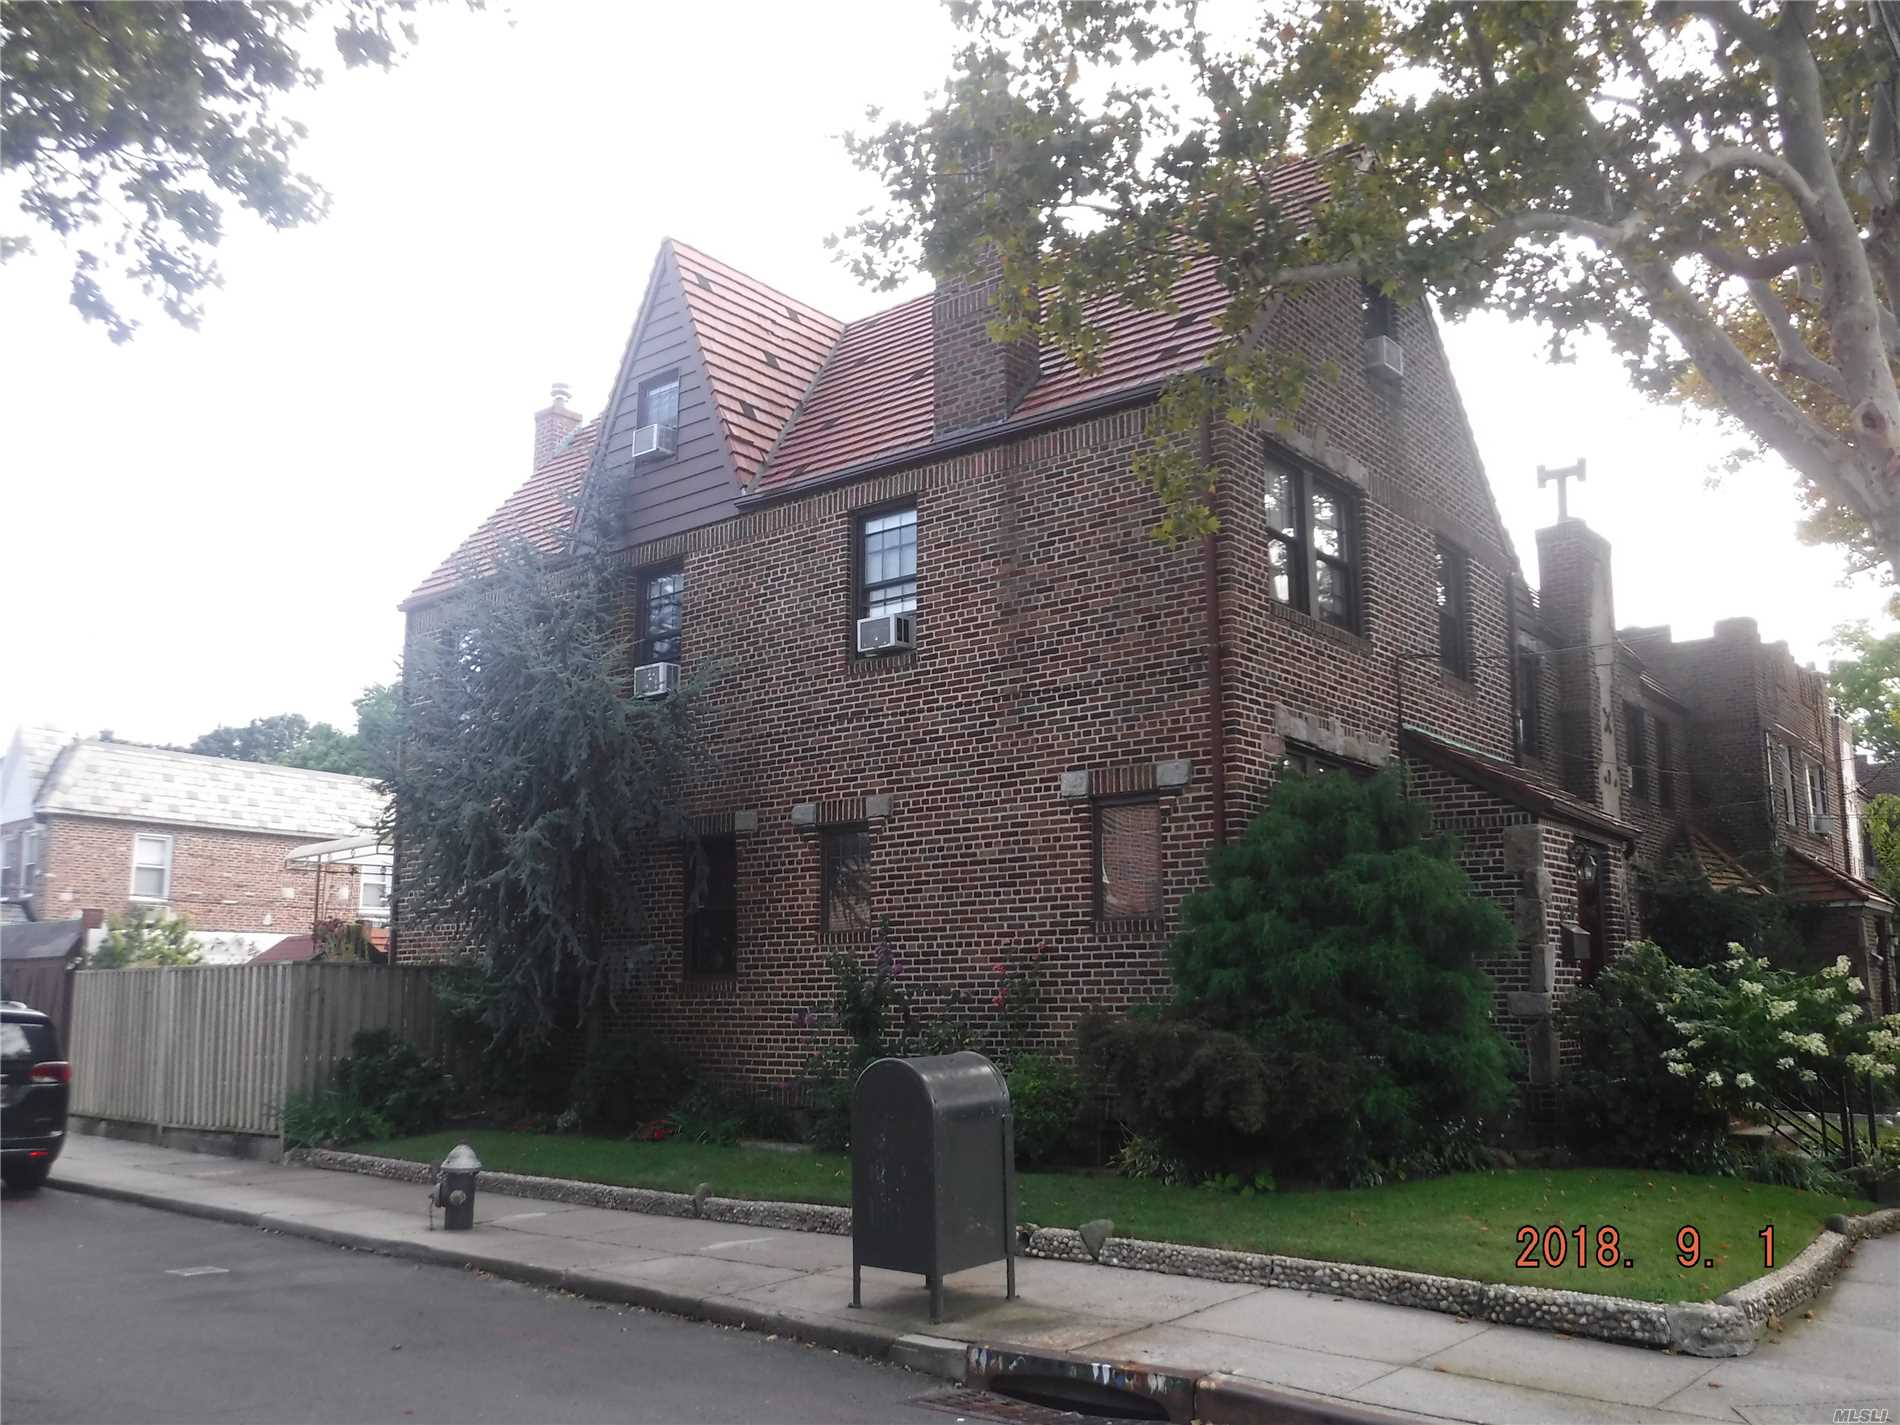 Charming Well Kept 2 Families Tudor. Sprinkle System In Front And Side Yard. Renovated Main Bathroom With Separate Shower And Jacuzzi. Corner Property With 2 Cars Garage + Parking Space In Driveway. Third Floor Studio Apartment With Terrace. Two Working Fire Wood Burning Fireplaces.